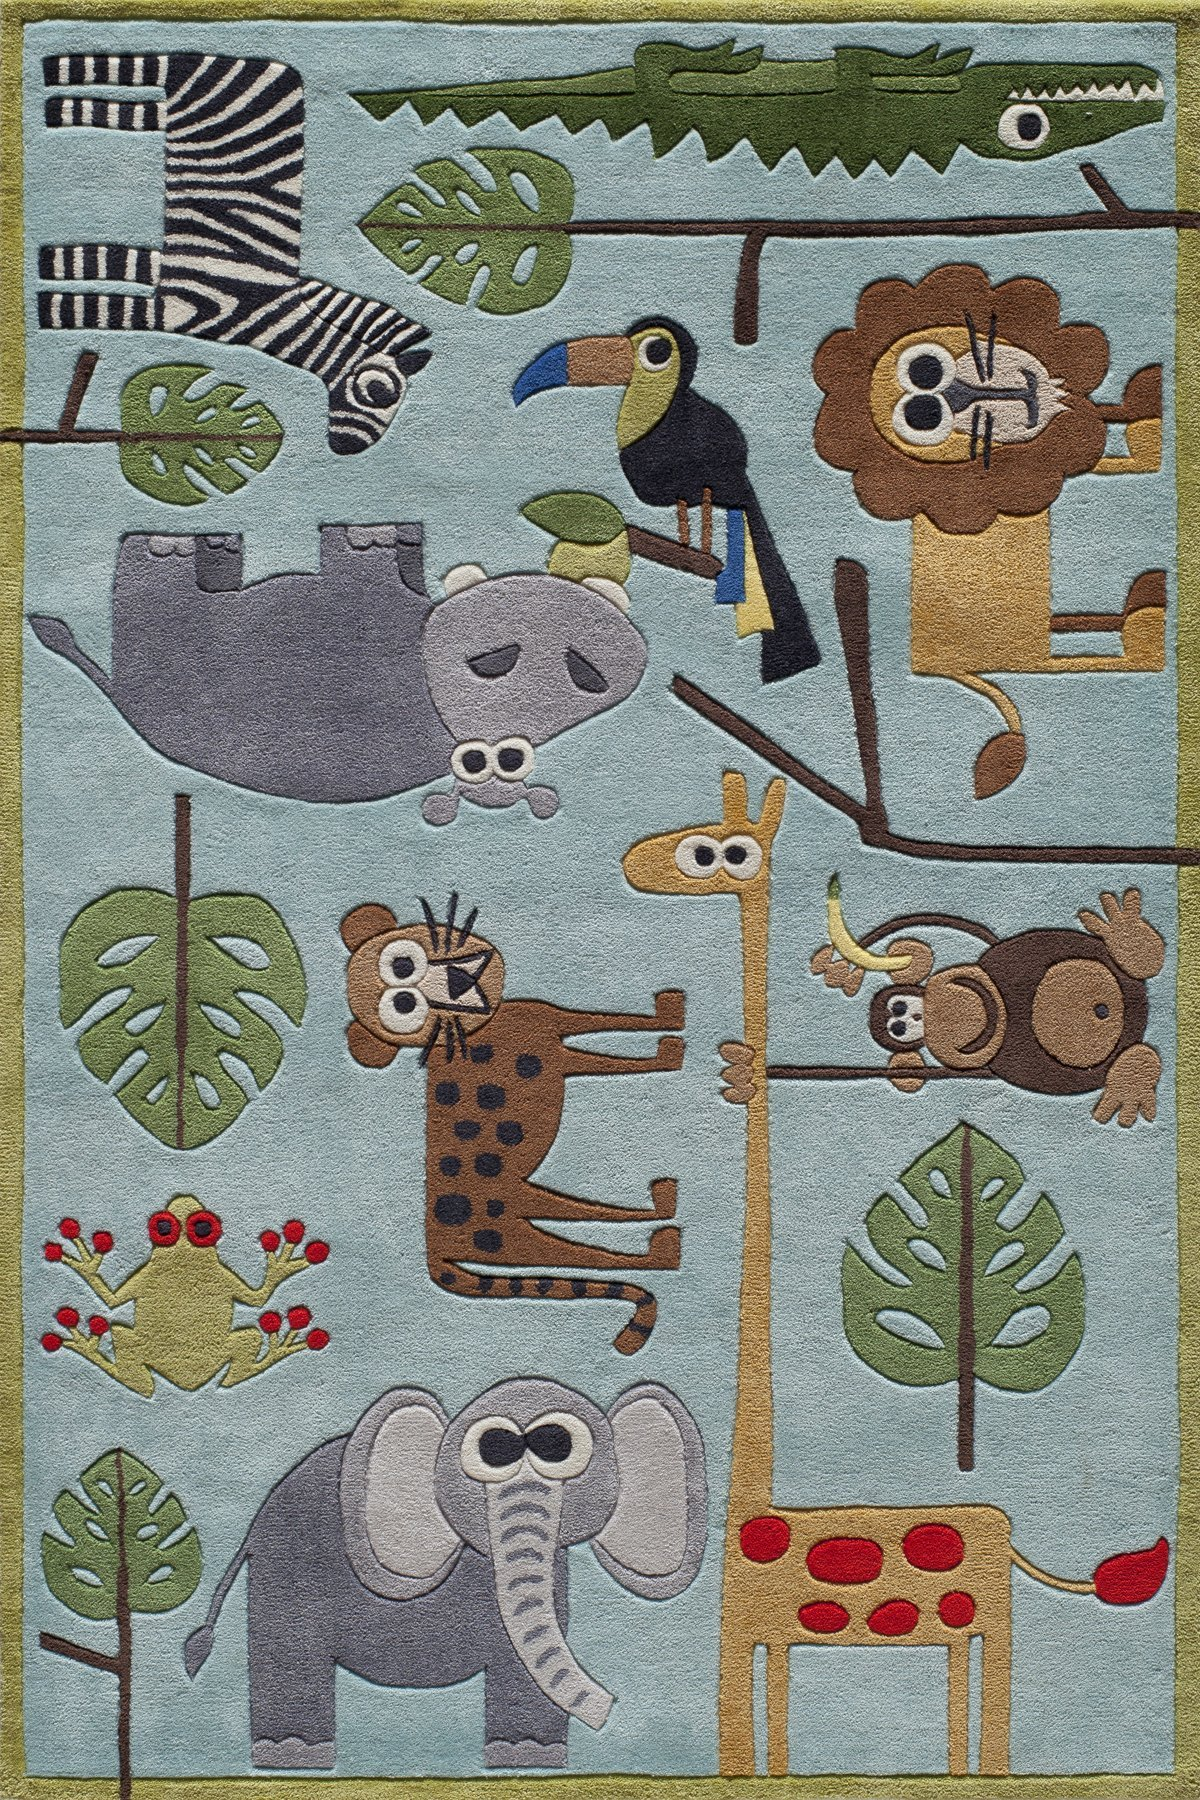 Momeni Rugs LMOJULMJ19BLU4060 Lil' Mo Whimsy Collection, Kids Themed Hand Carved & Tufted Area Rug, 4' x 6', Multicolor Jungle Animals on Blue